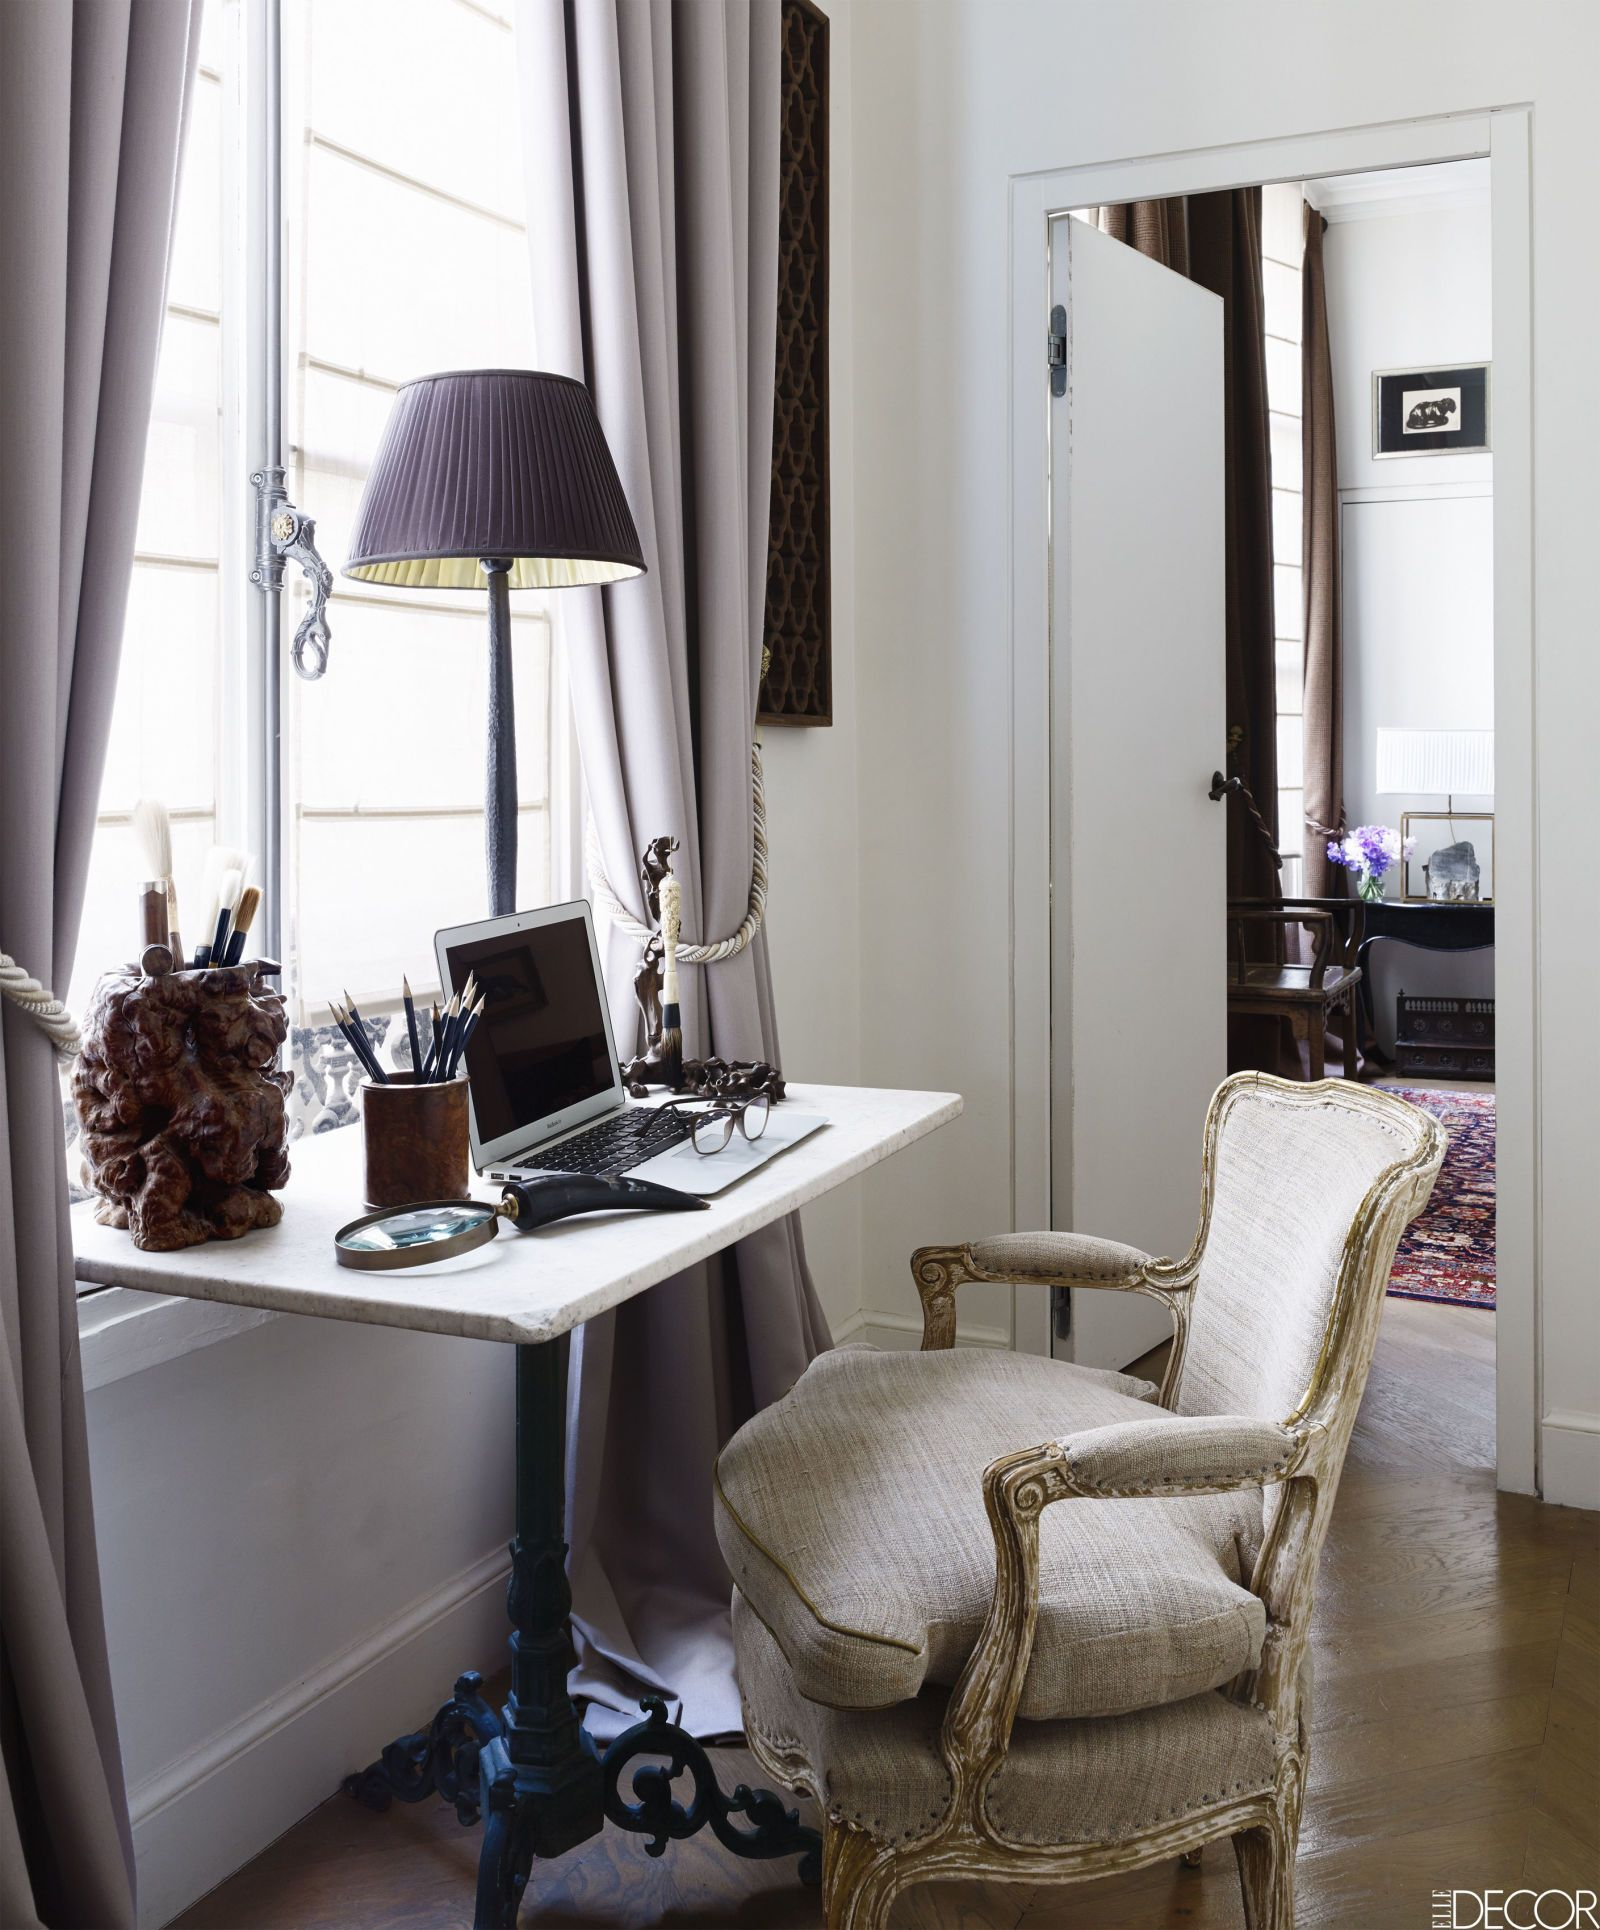 HOUSE TOUR: East Meets West In A Sophisticated Paris Pied